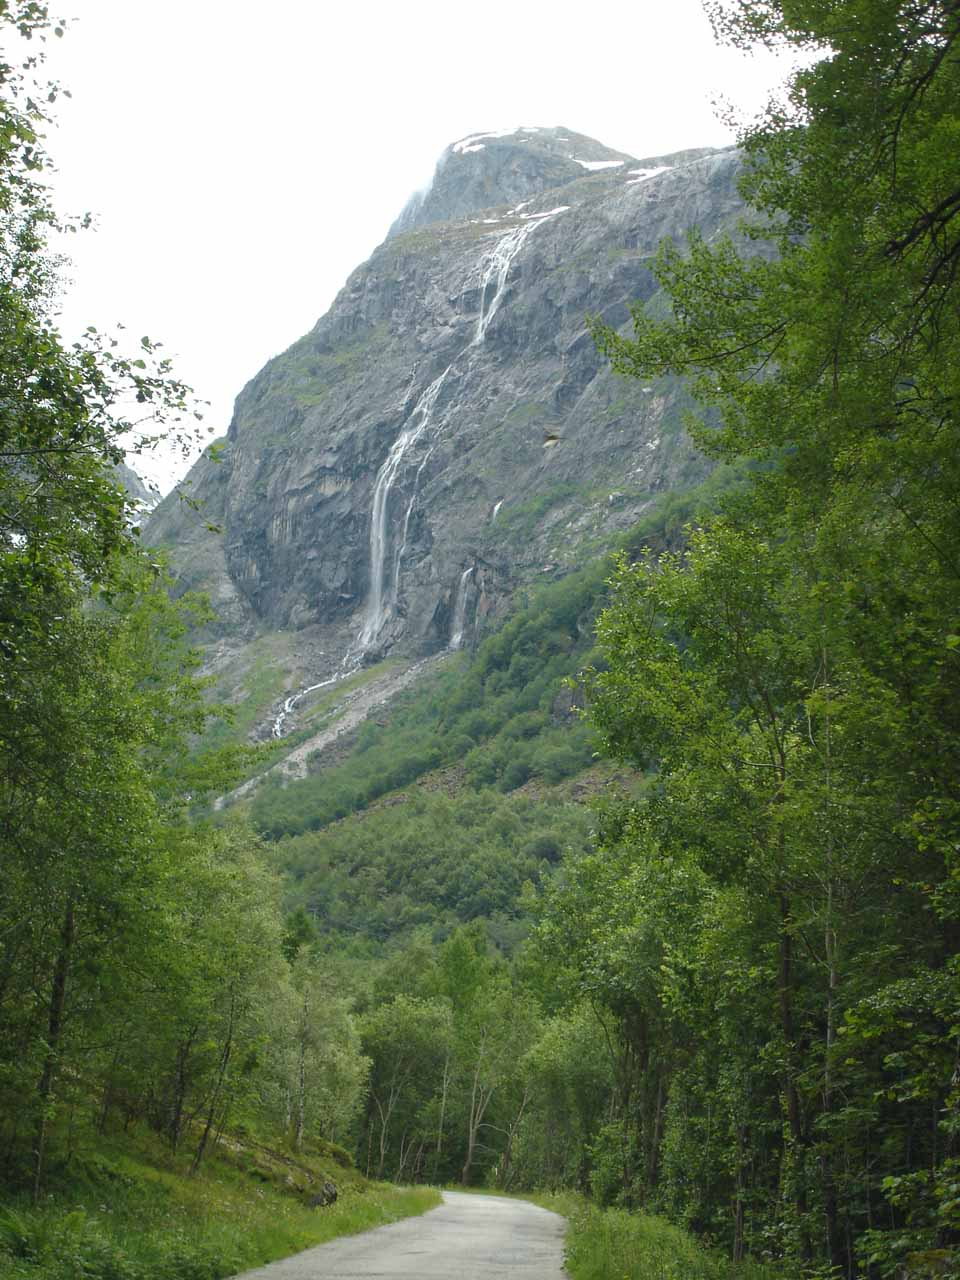 When the road turned and headed east in Osa, that was when we noticed Kyrfossen